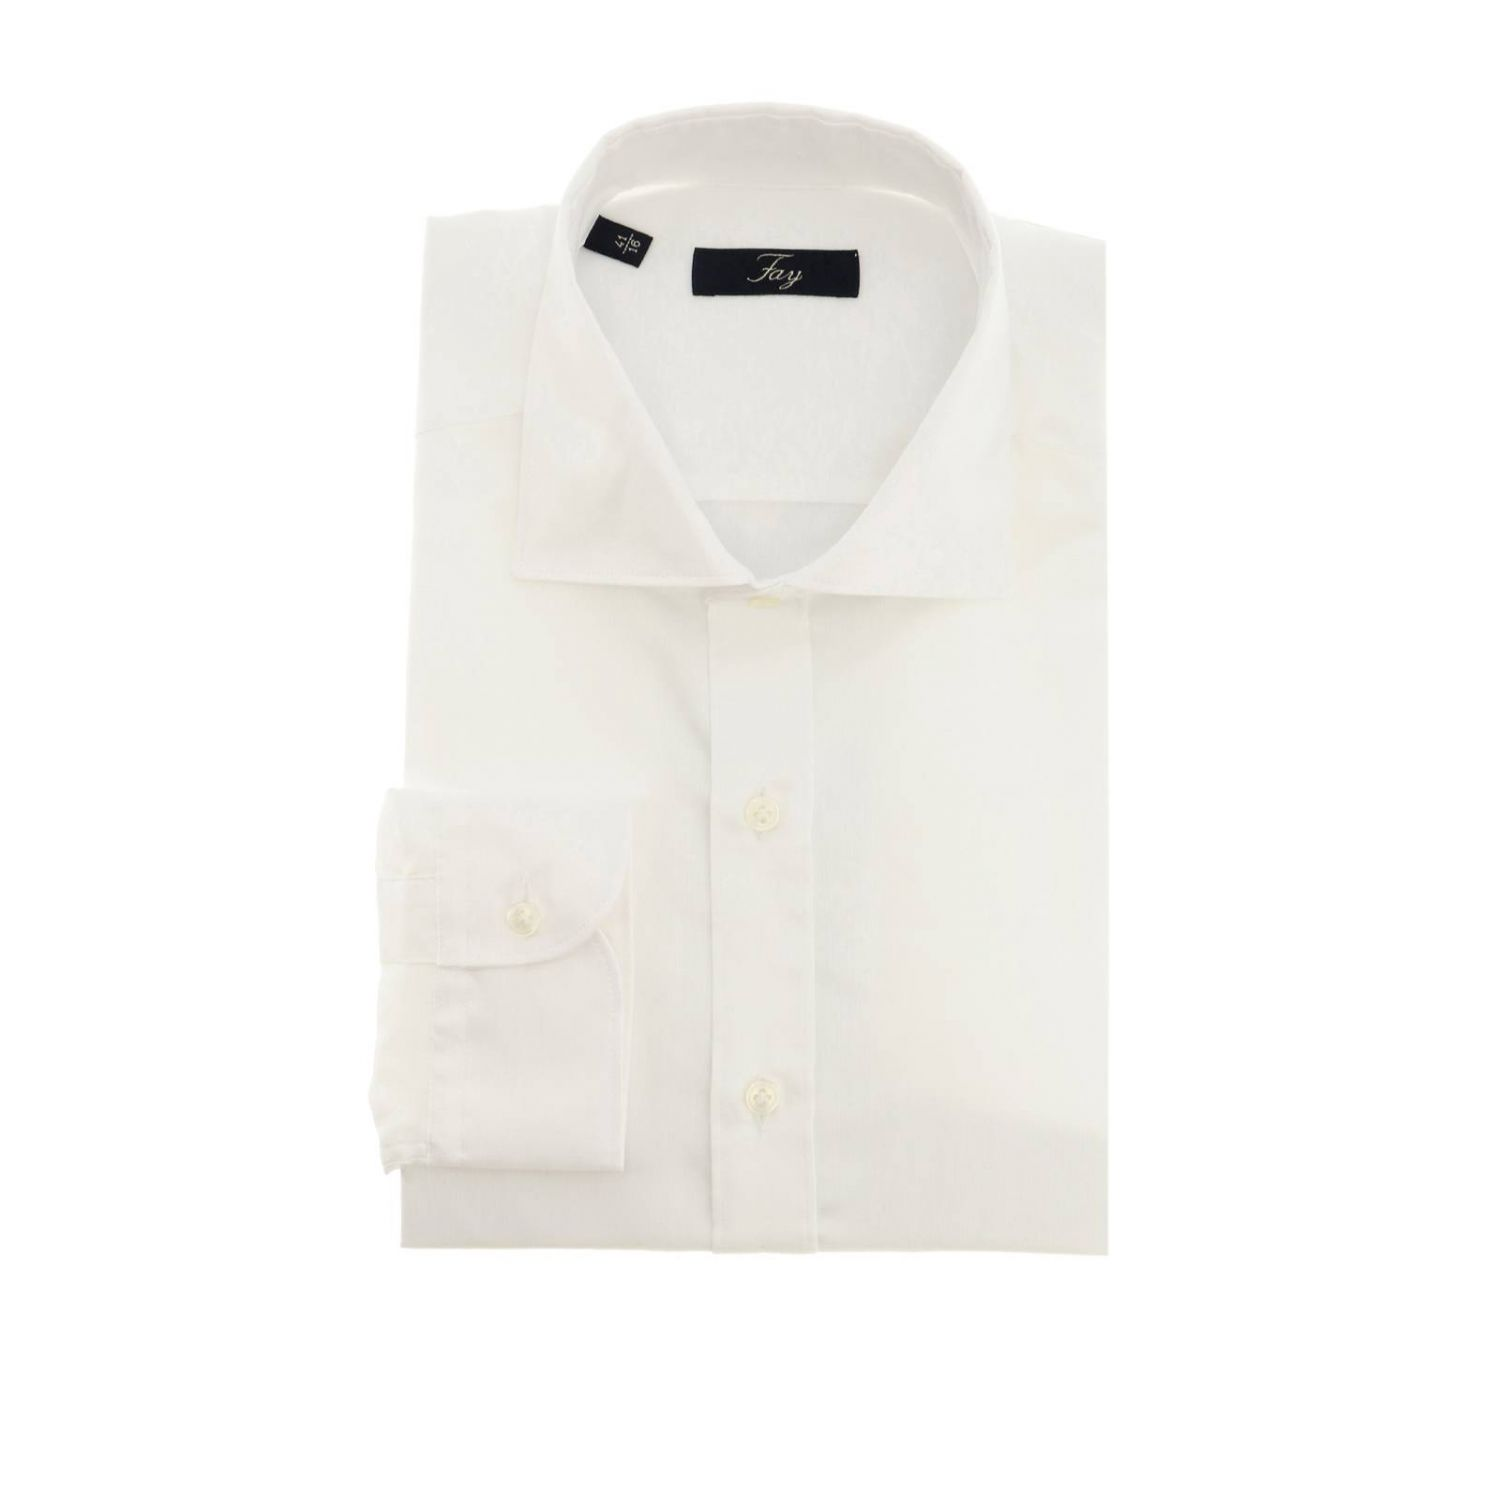 Fay fil a fil shirt with French collar white 1